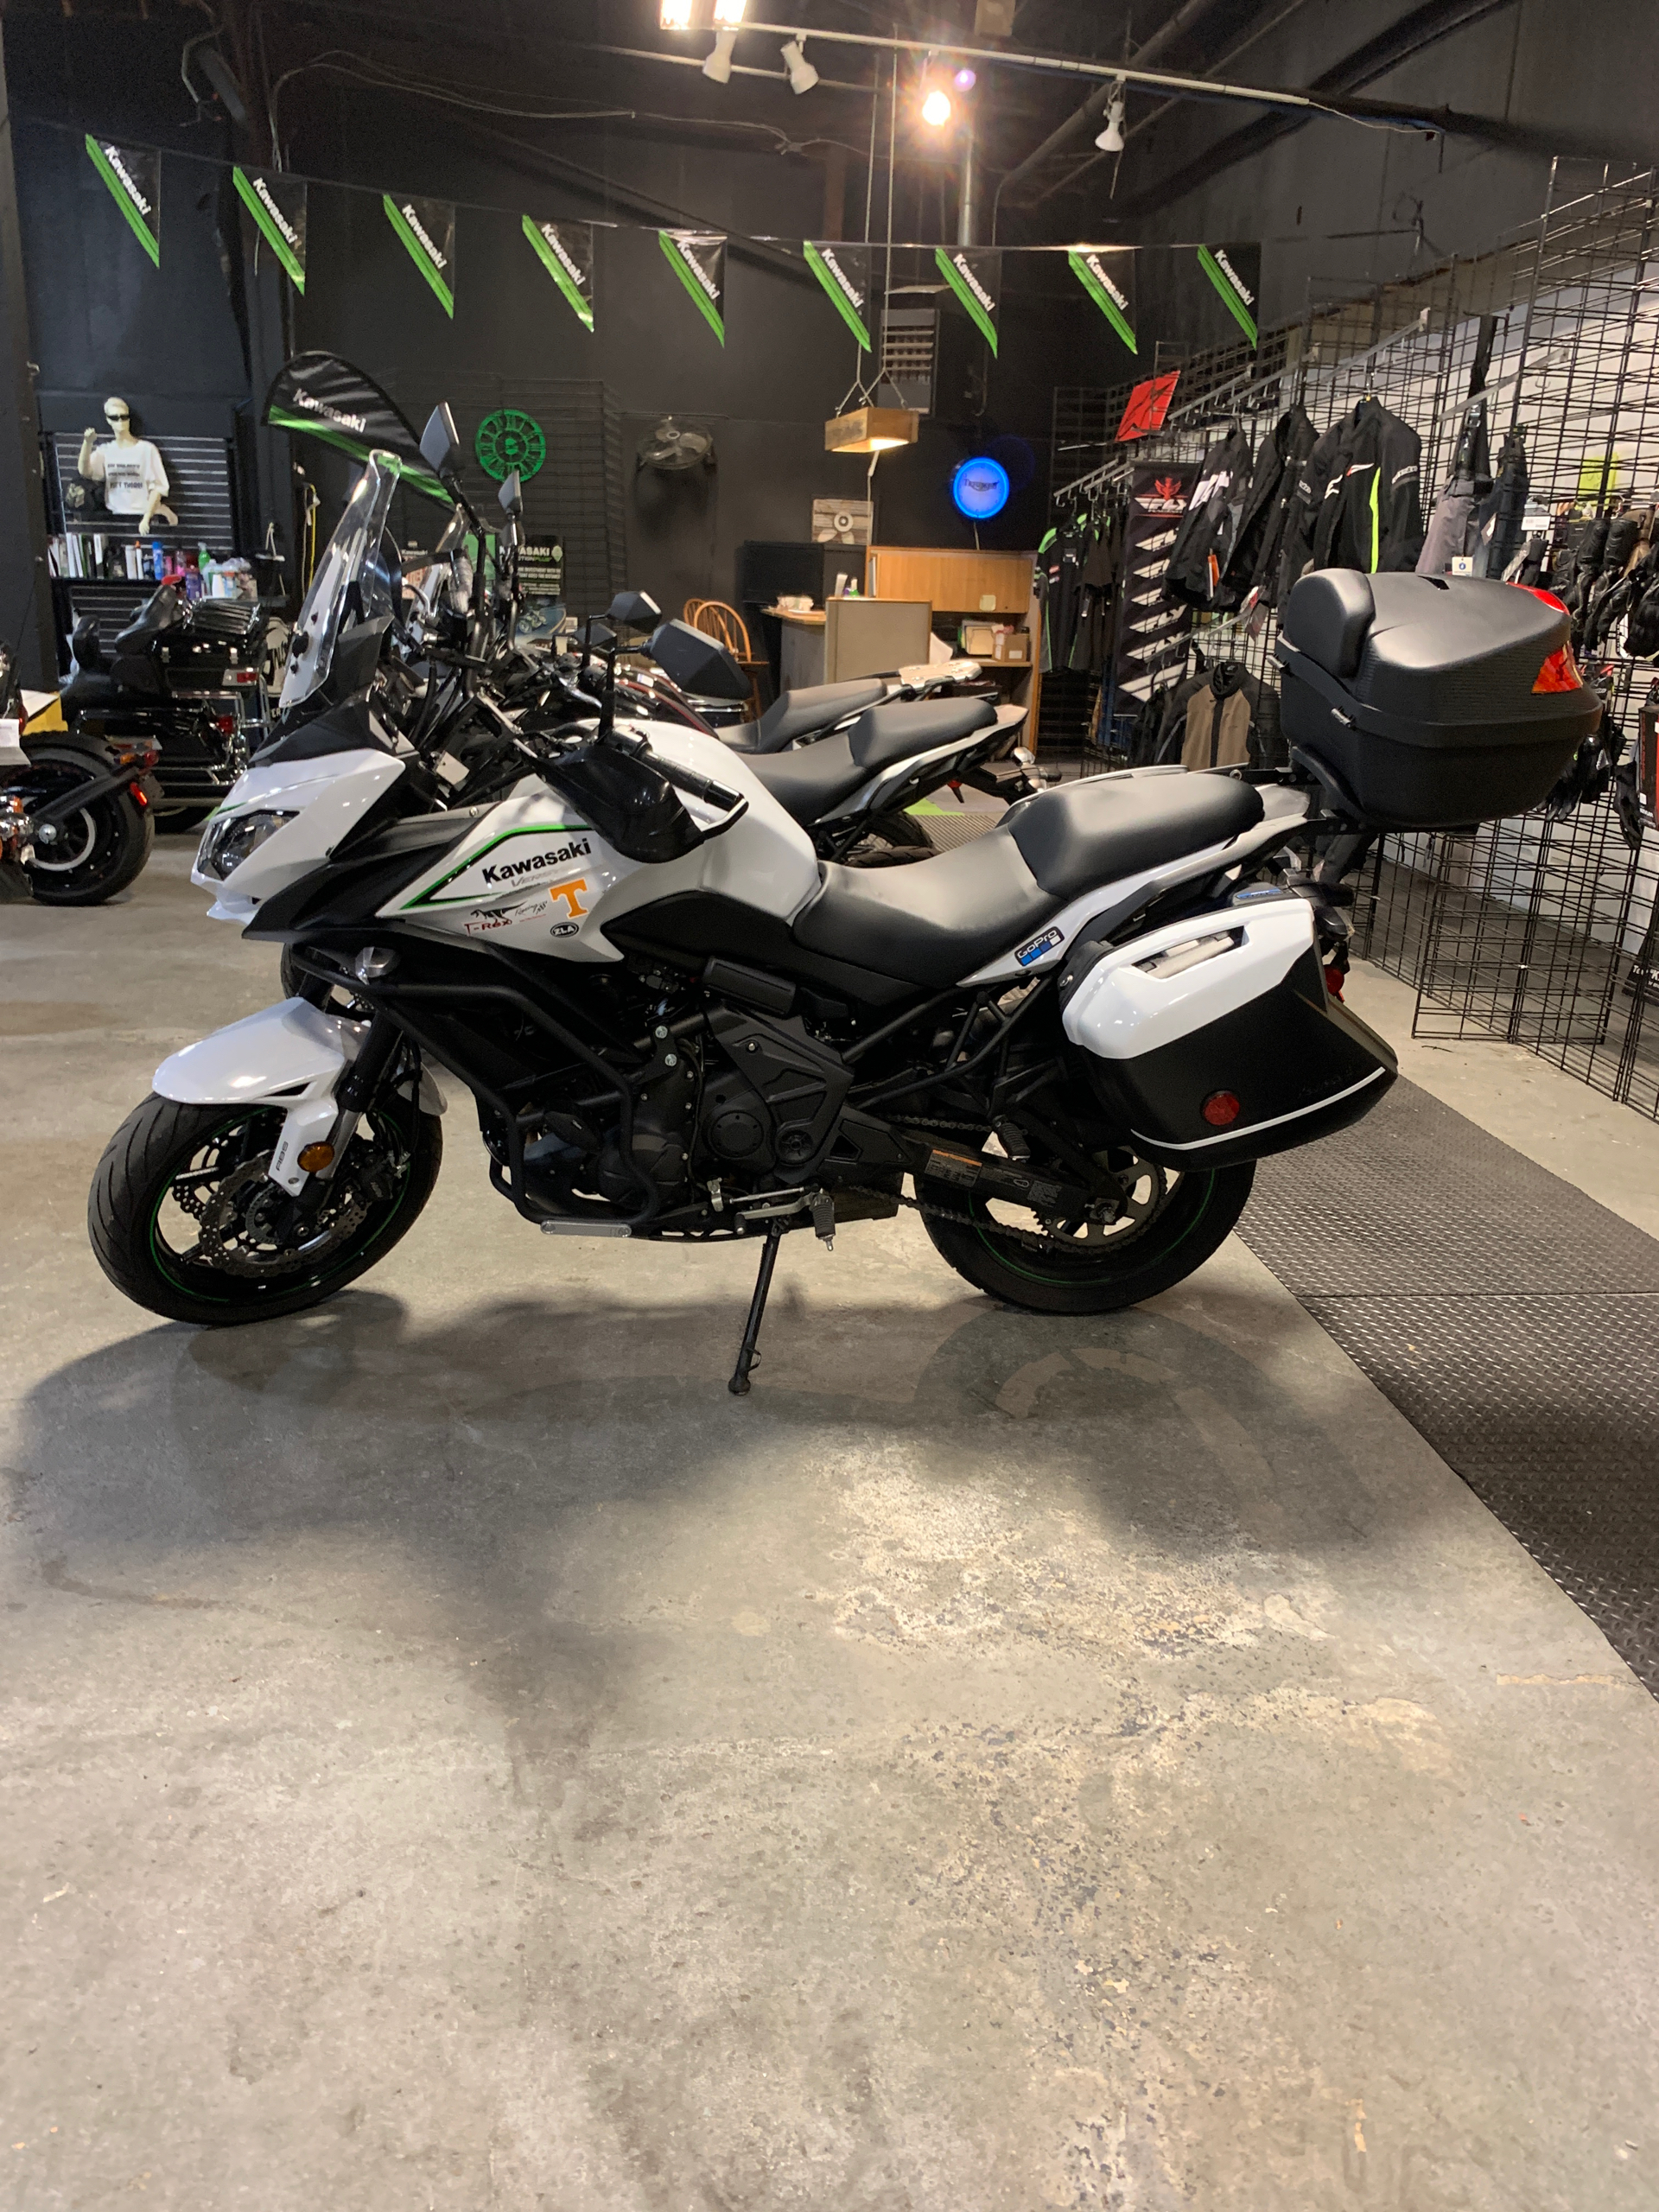 2018 Kawasaki Versys 650 LT in Kingsport, Tennessee - Photo 3